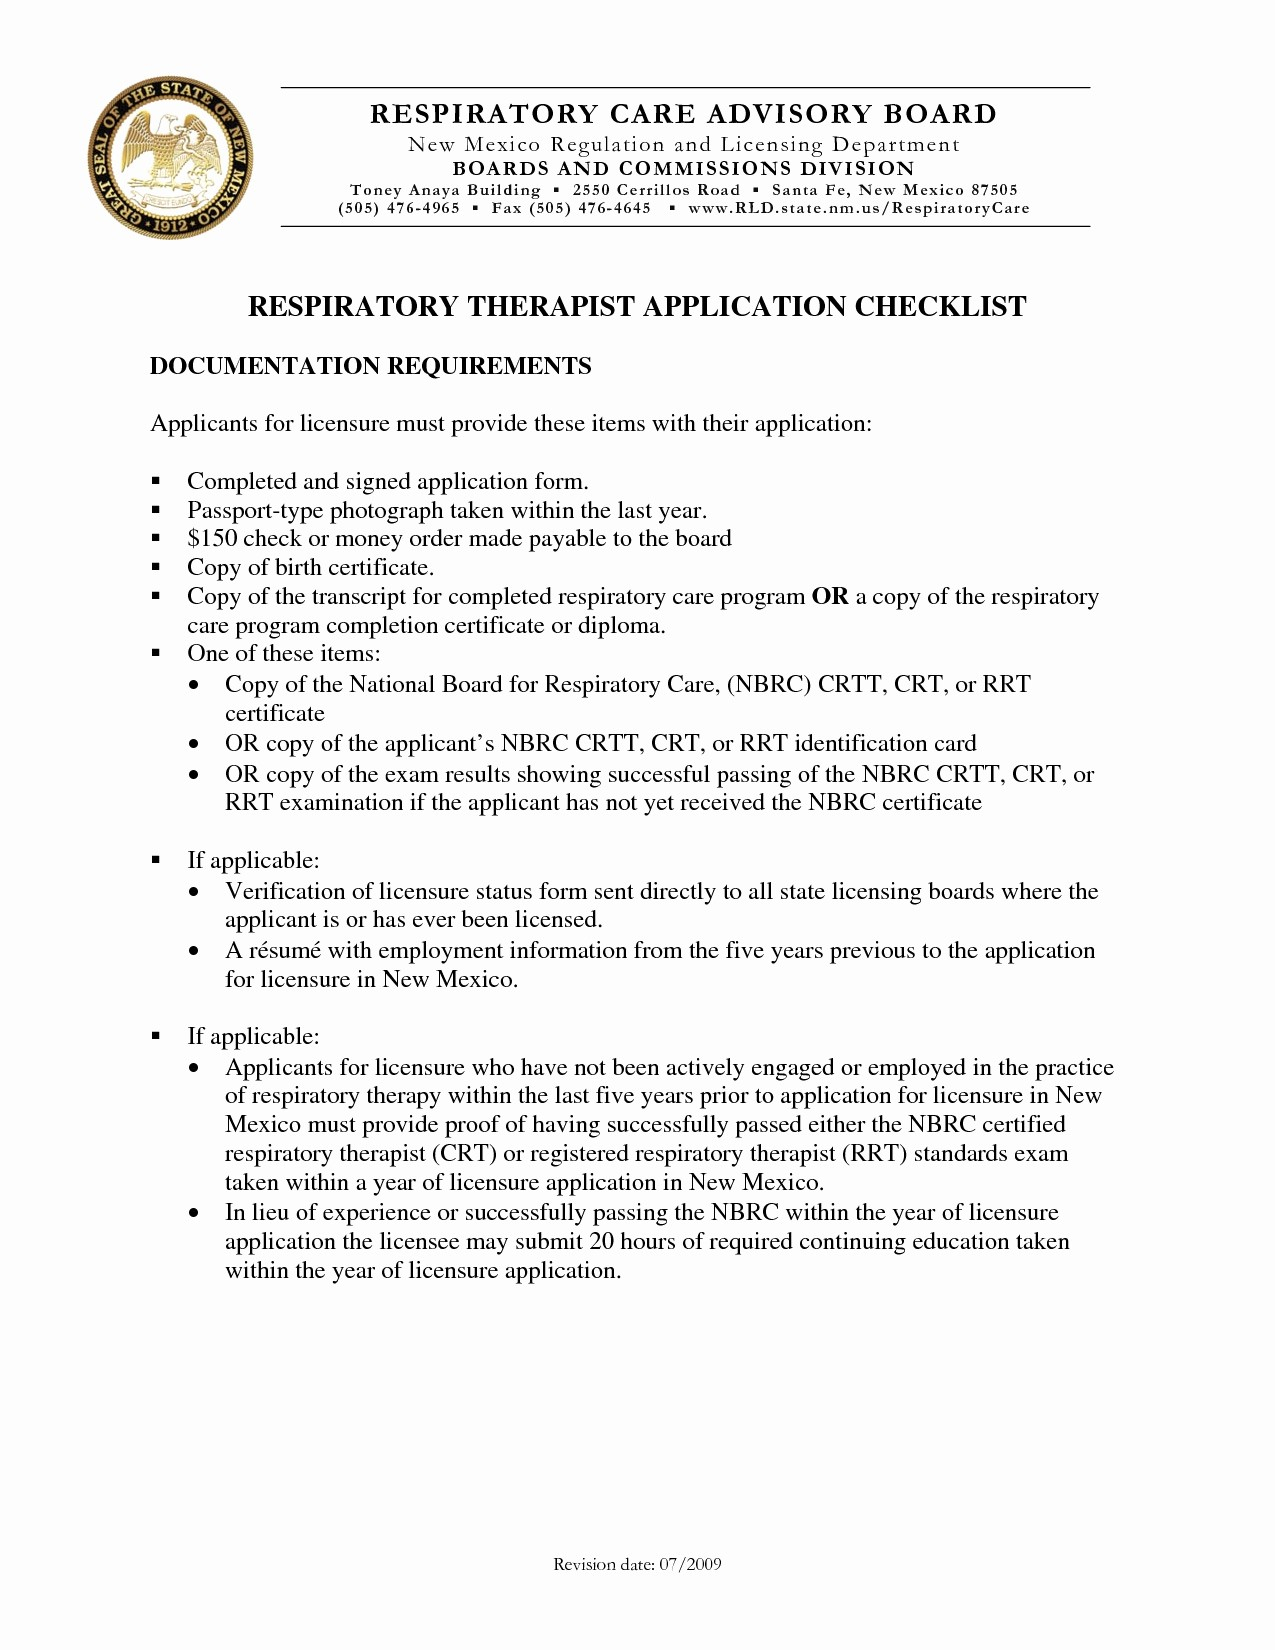 Sample Resumes for Respiratory therapist - Respiratory therapist Resume Sample Best 50 Best Respiratory